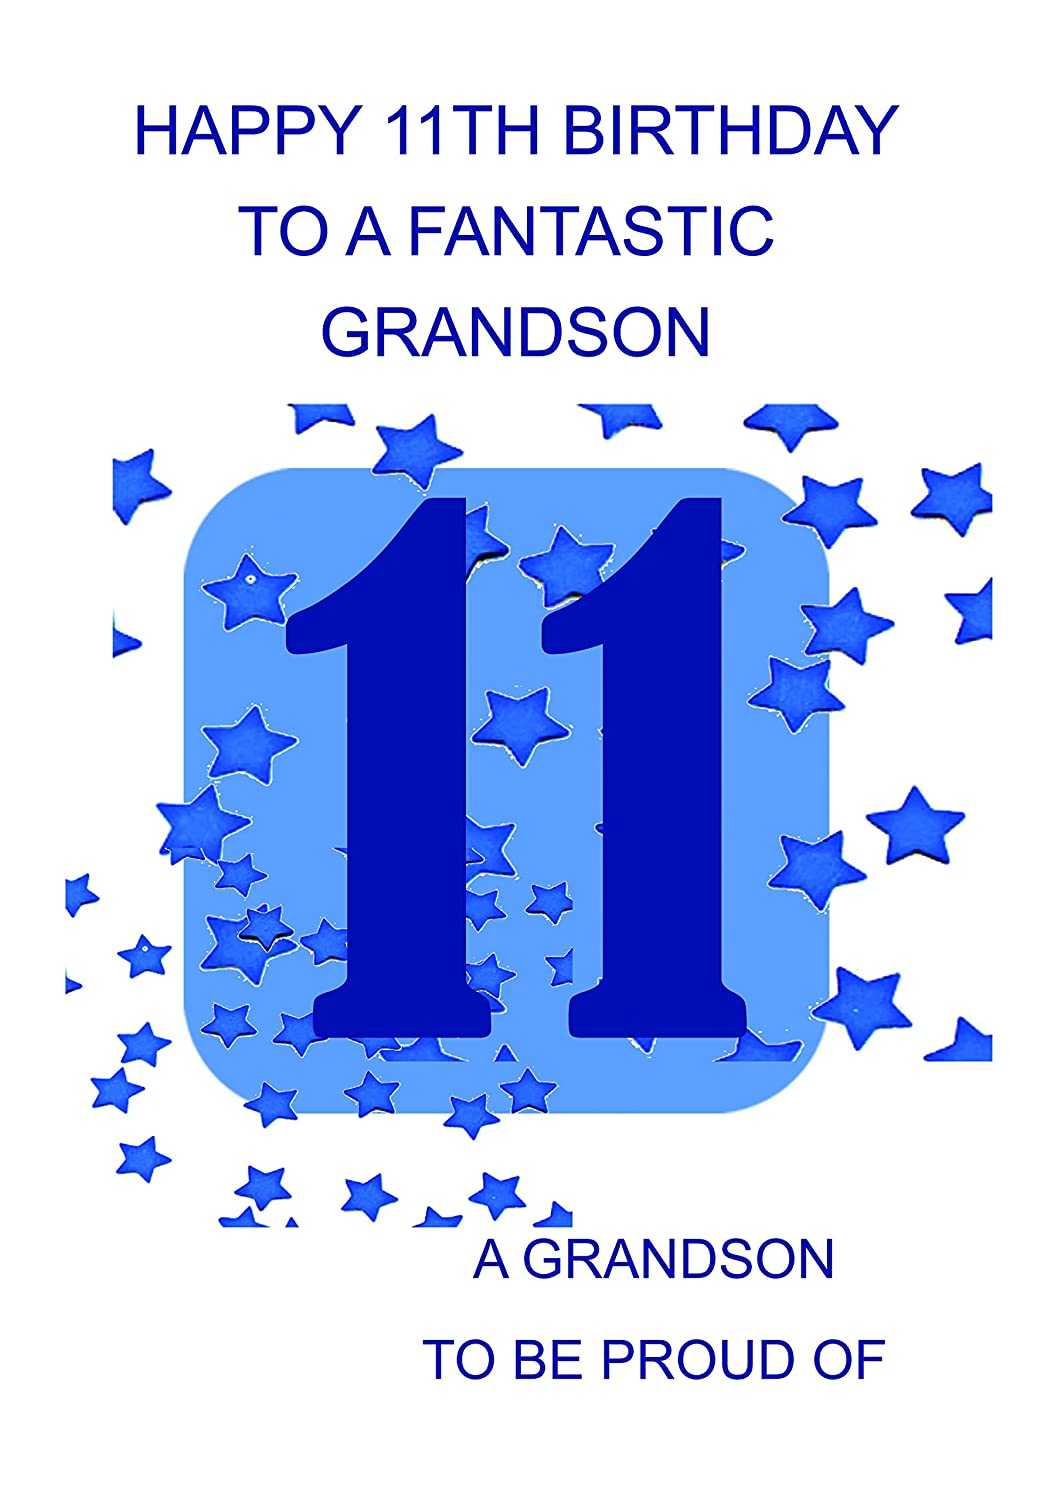 Grandson 11 Birthday Card Amazoncouk Office Products